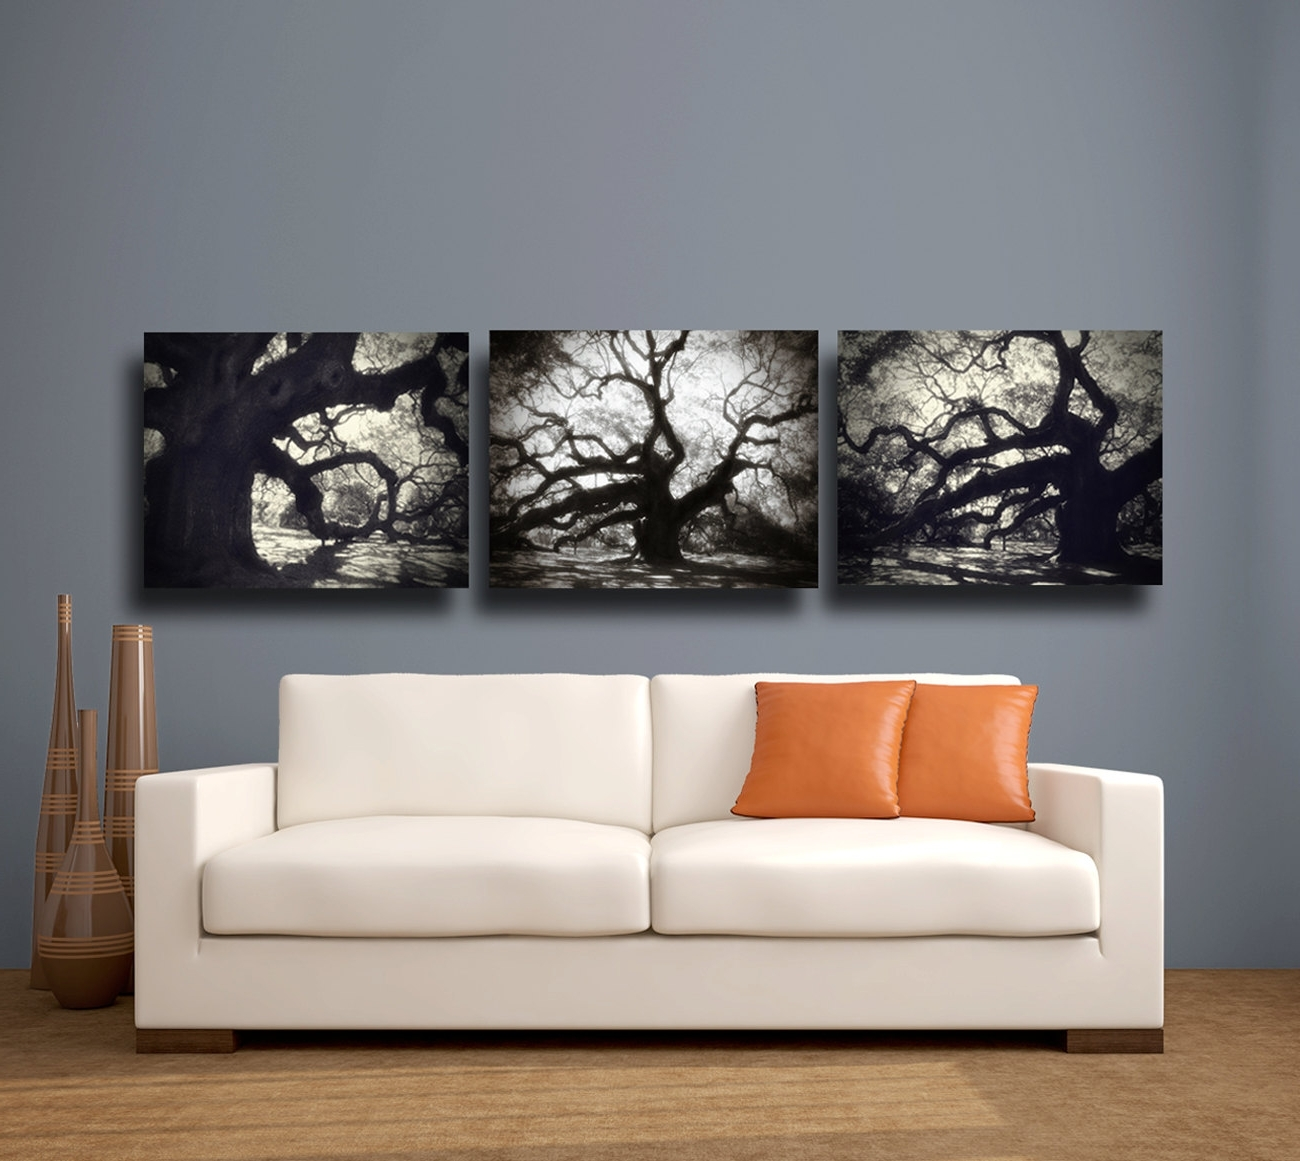 Most Recent Wall Art Designs: Black And White Canvas Wall Art Astounding With Large White Wall Art (View 3 of 15)